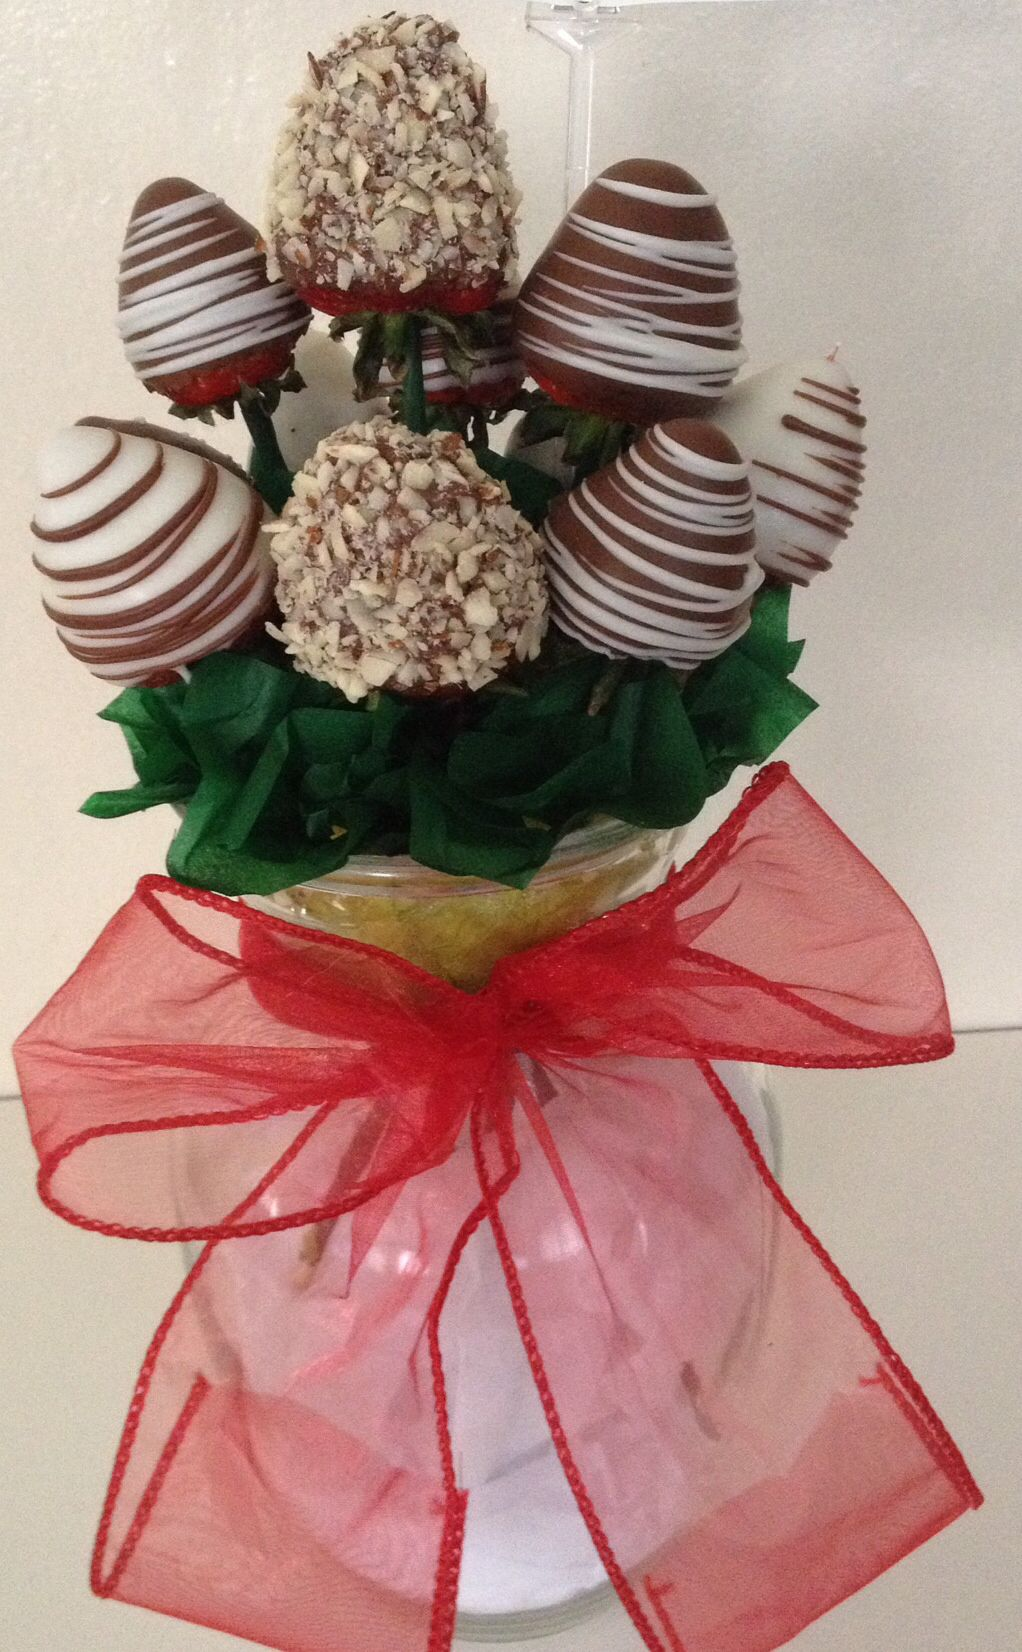 Chocolate Covered Strawberry Bouquet Chocolate Covered Strawberries Bouquet Chocolate Covered Strawberries Chocolate Strawberries Bouquet